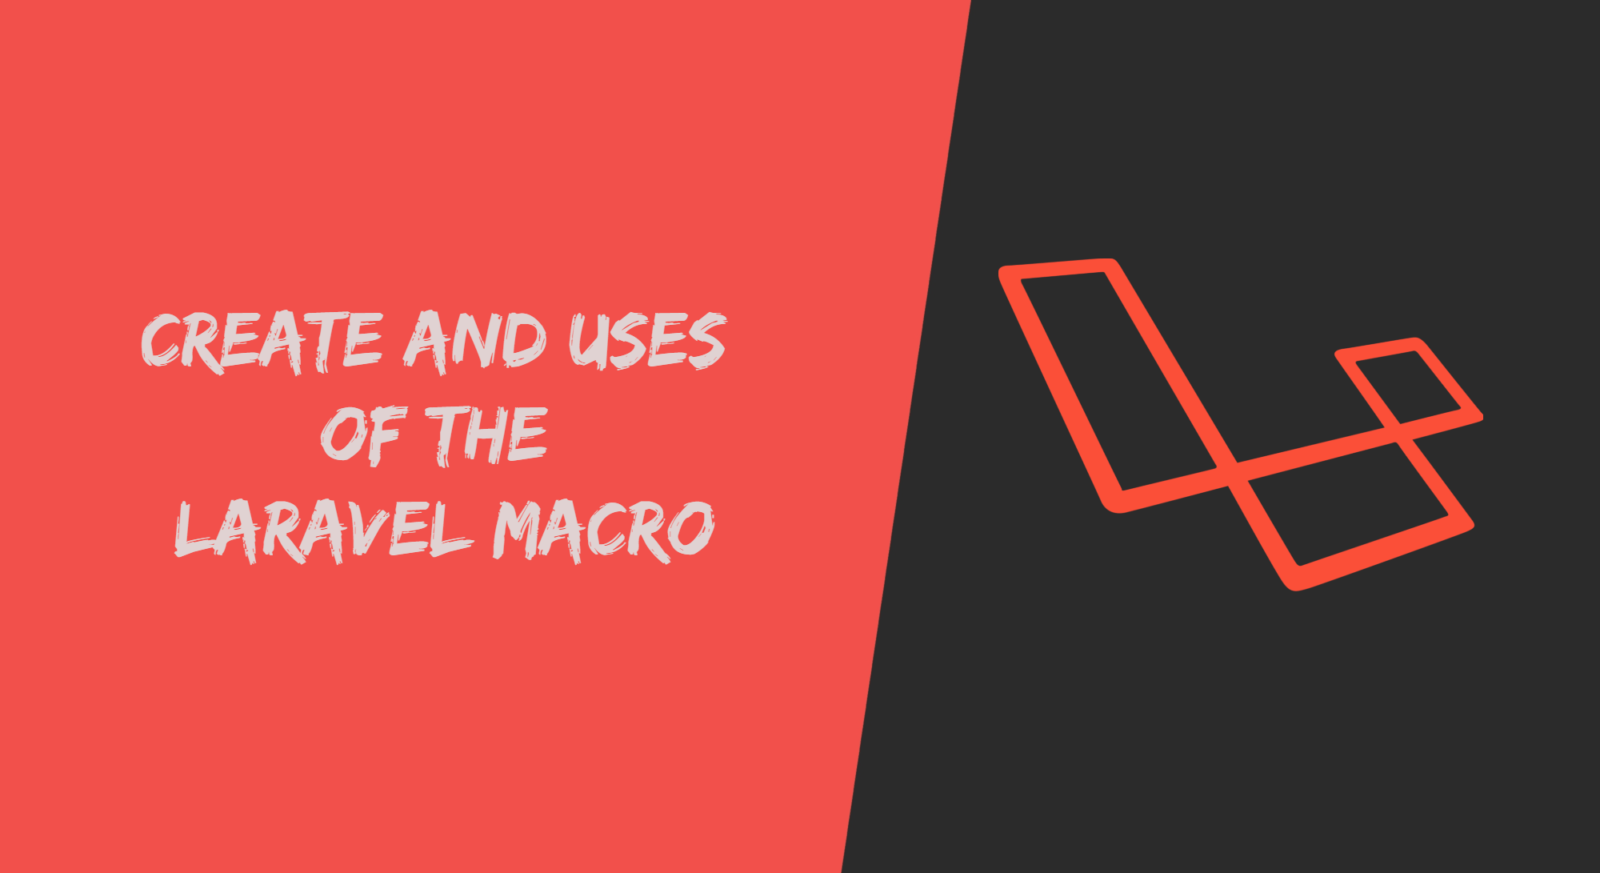 How Create and uses of the laravel macro example